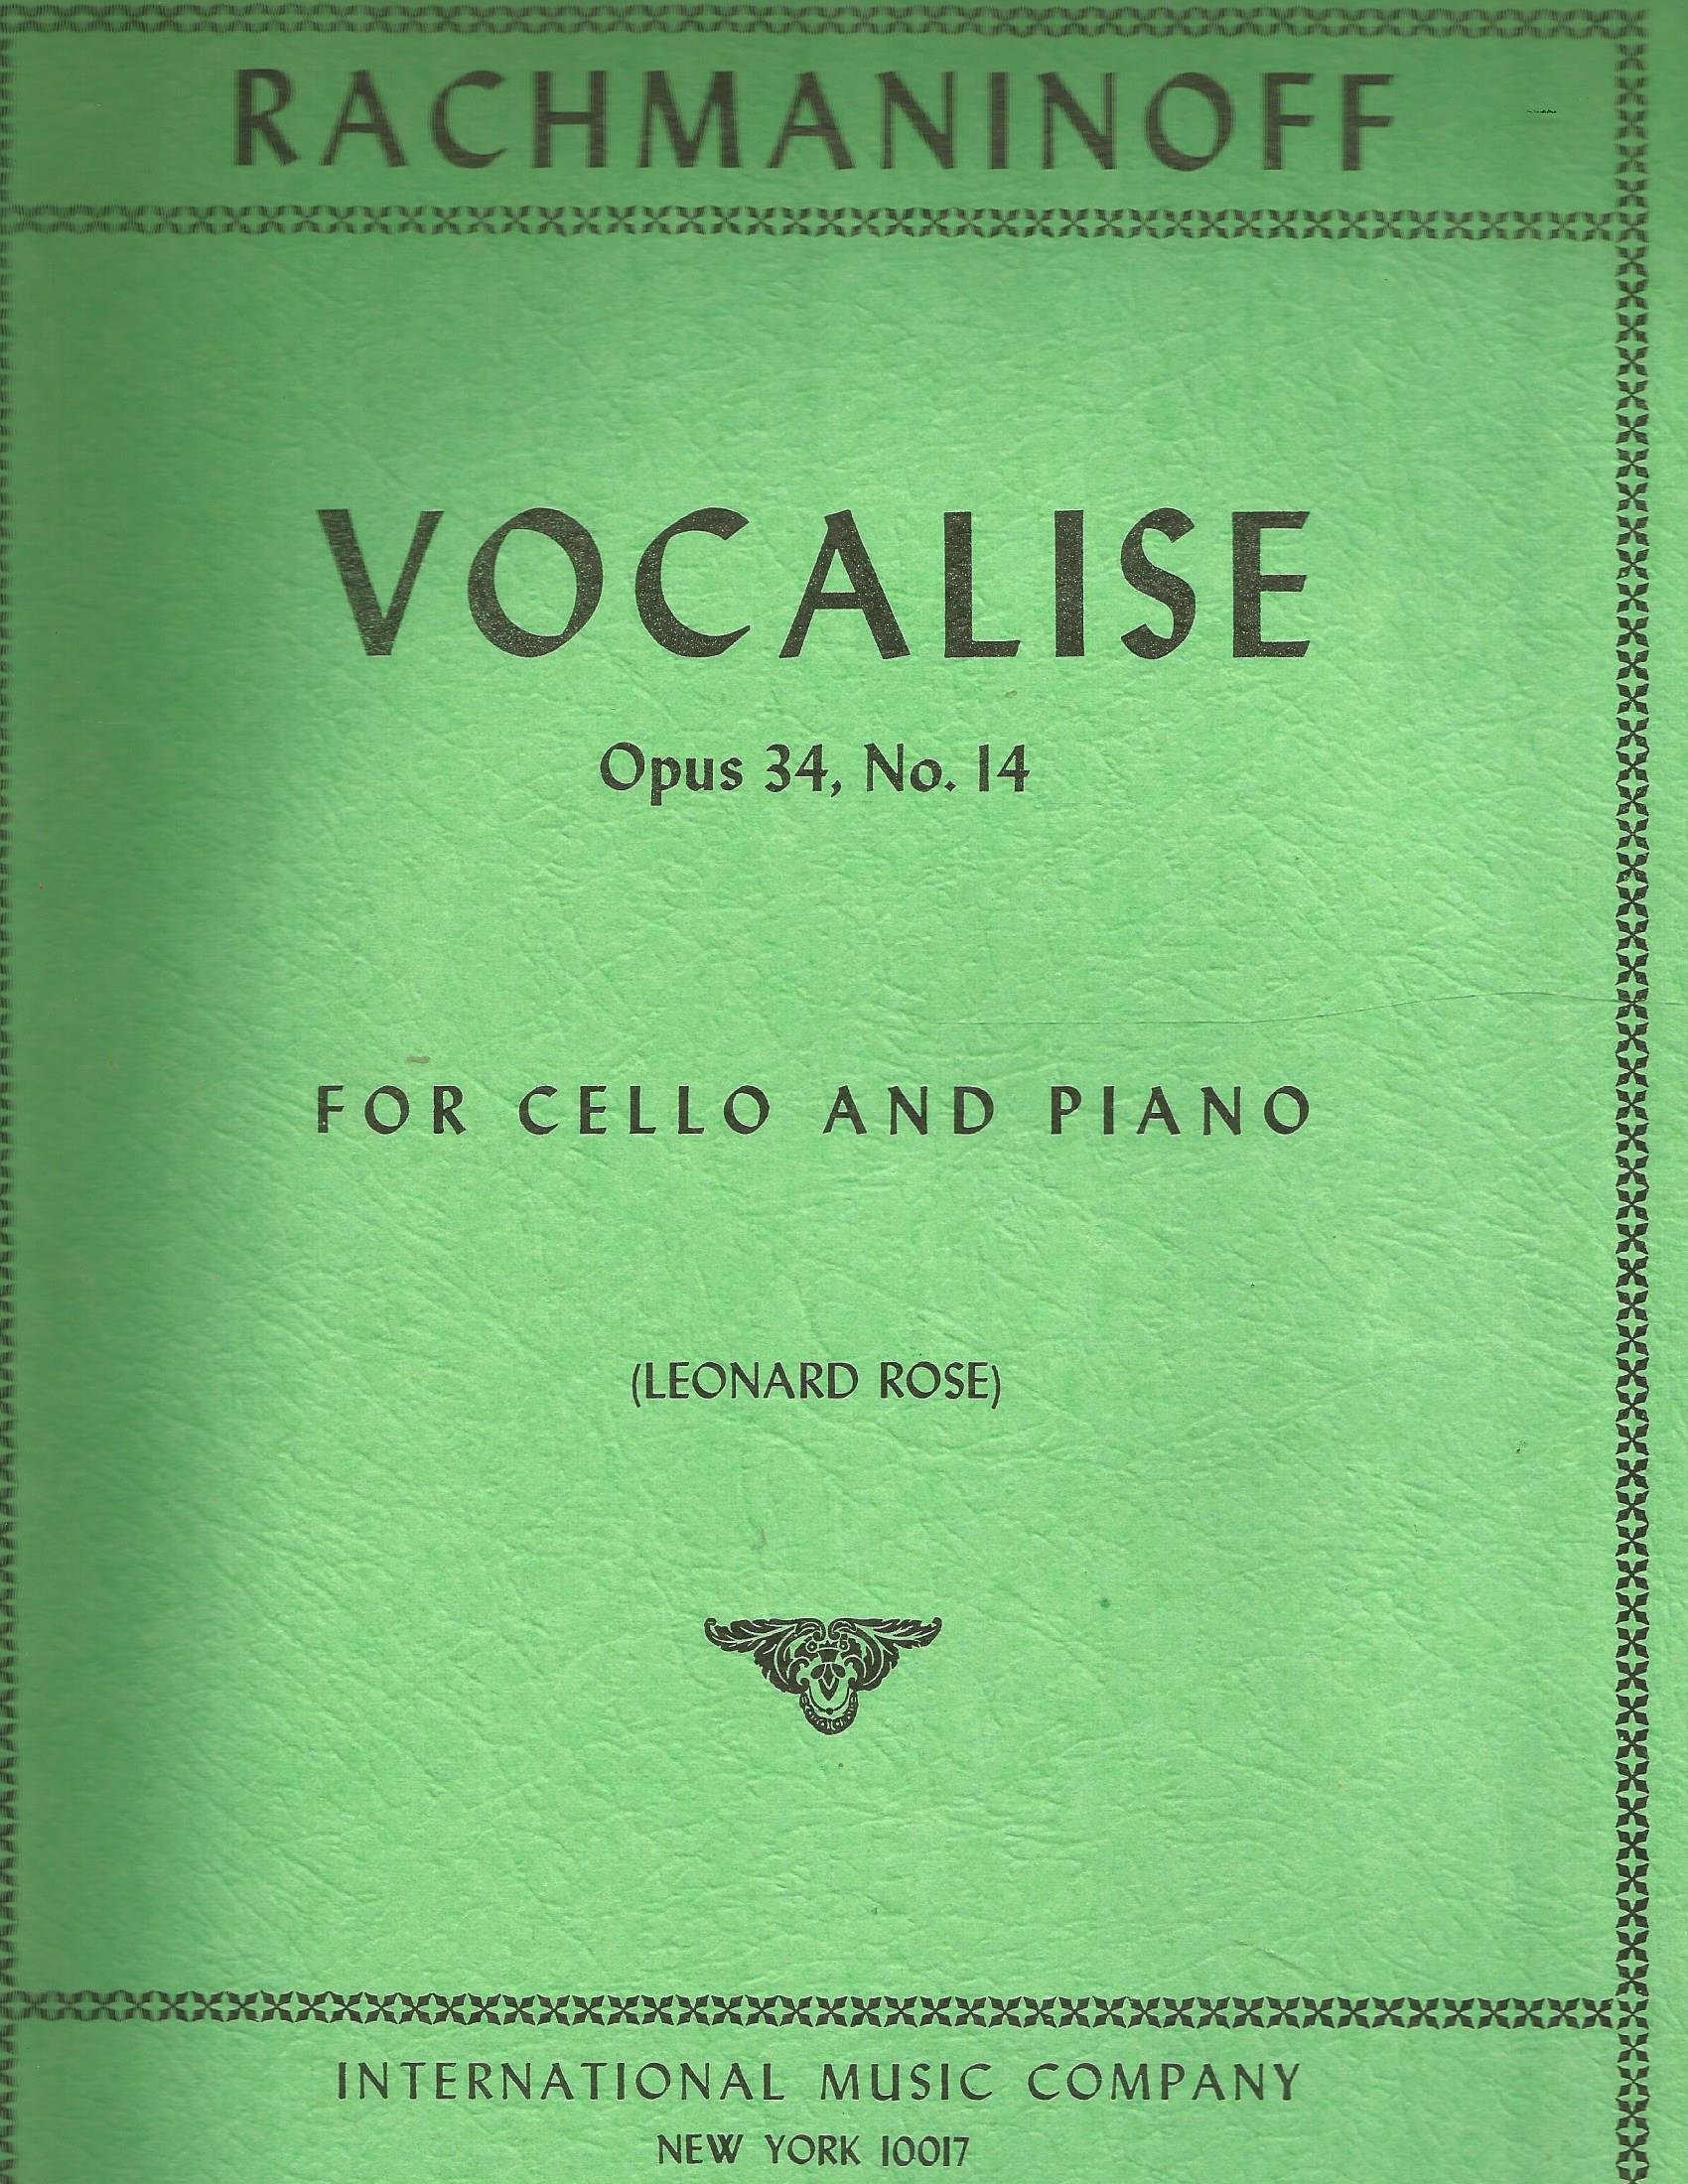 Rachmaninoff - Vocalise Op. 34 No. 14. For Cello. Edited by Leonard Rose. by International Music